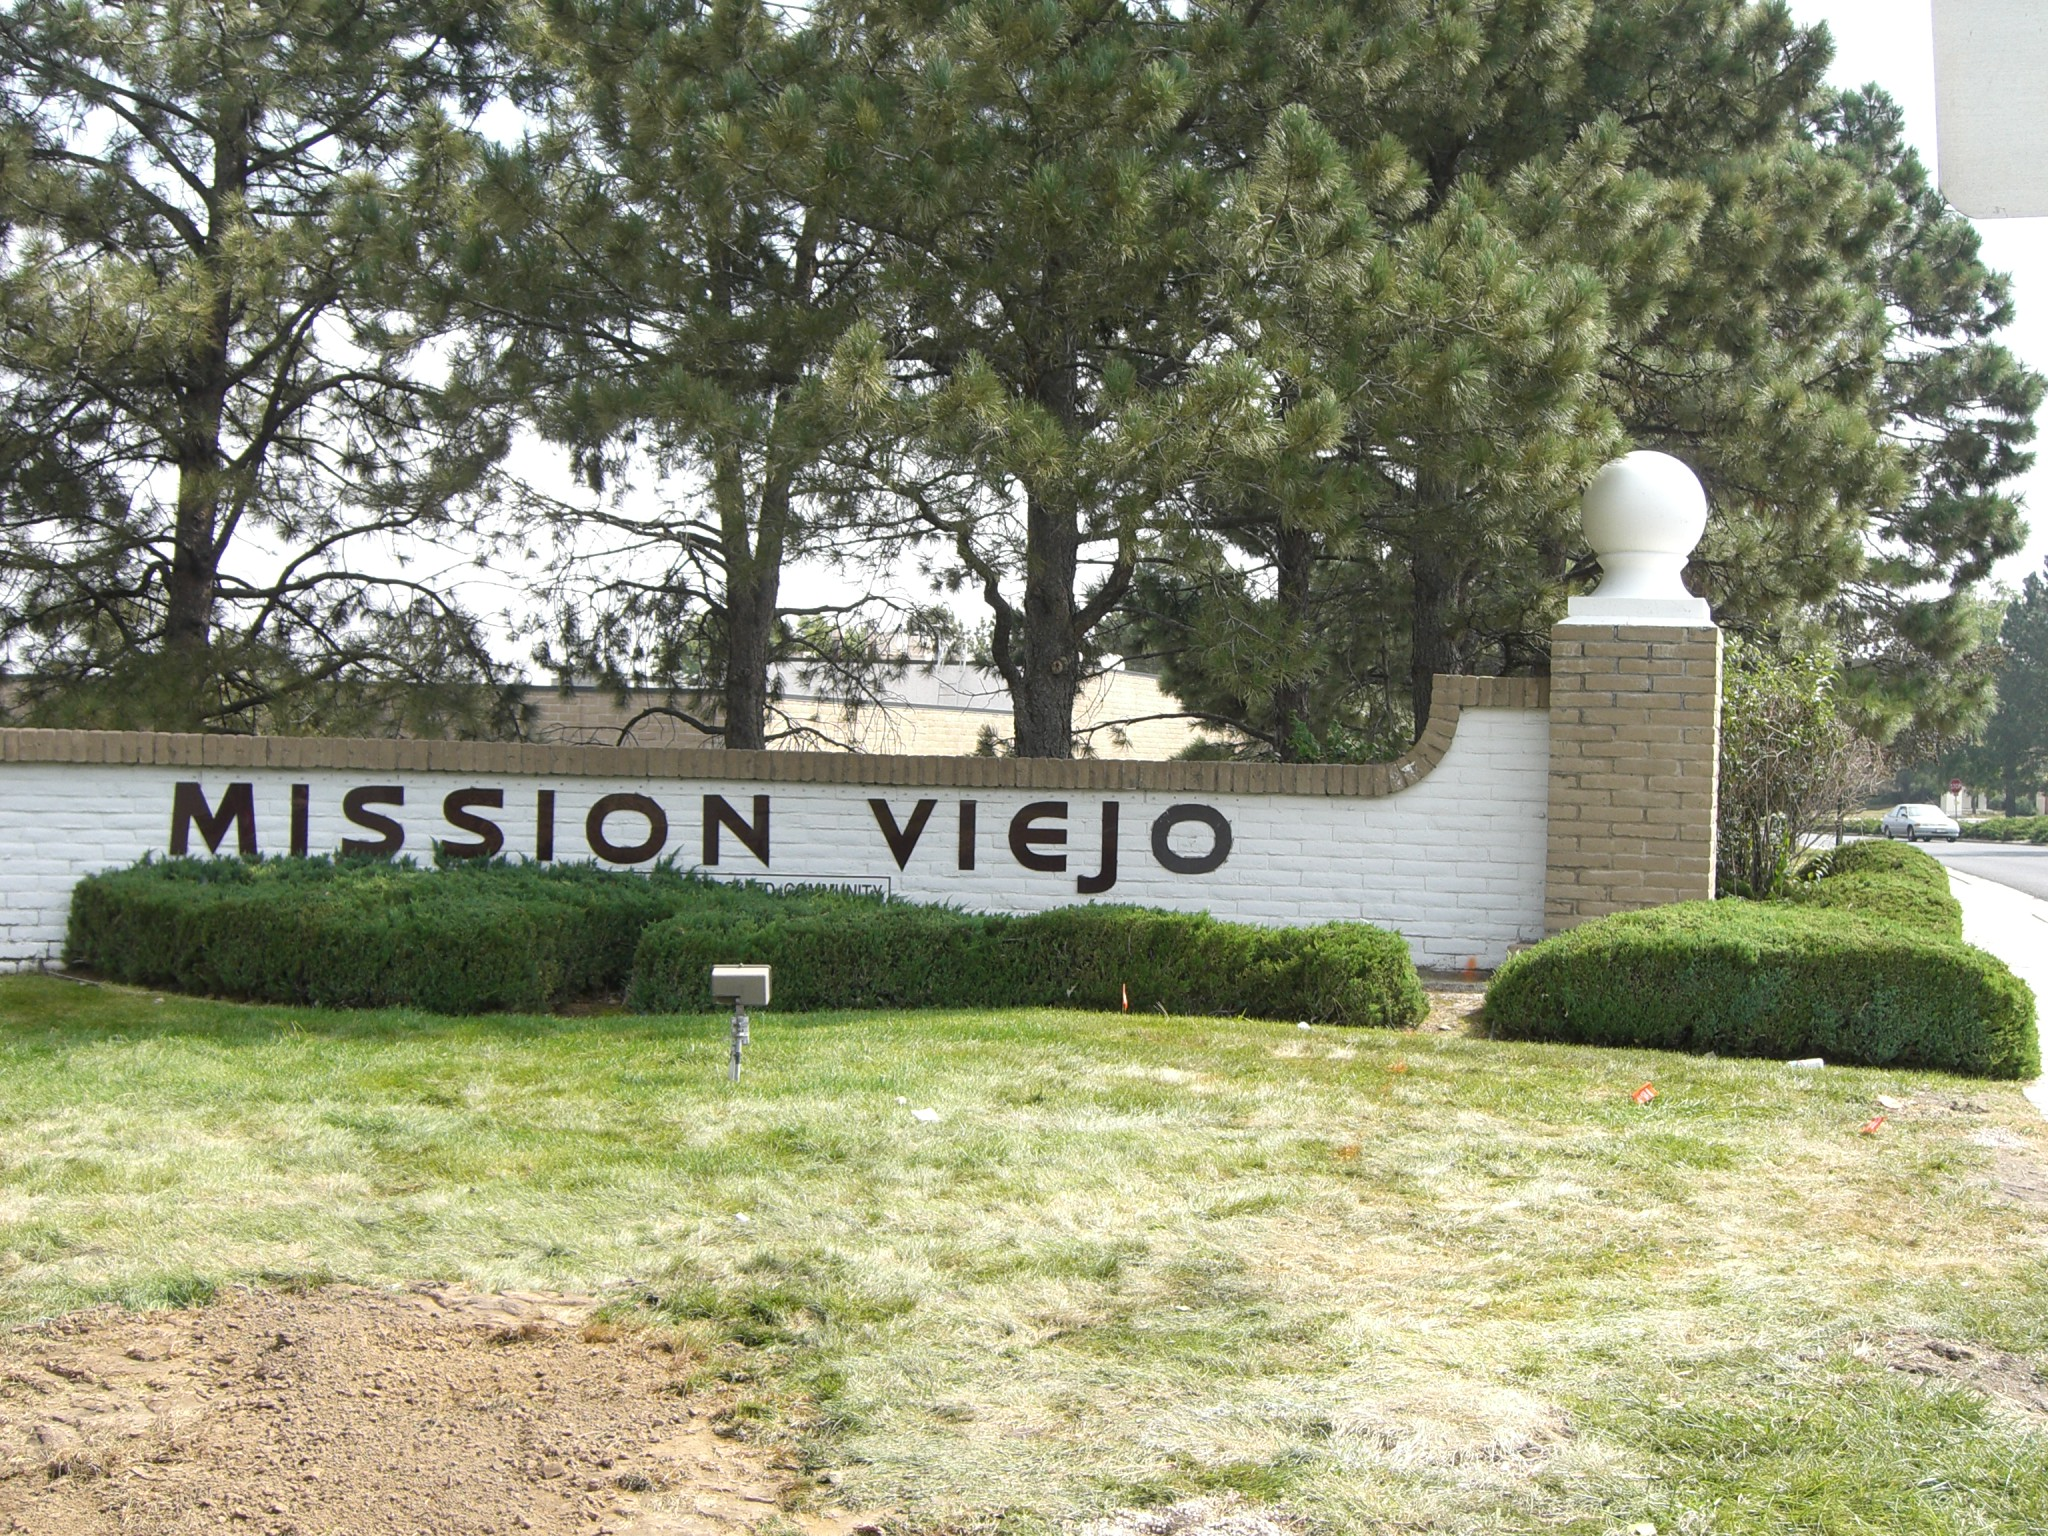 Mission Viejo, Aurora, Colorado - Wikipedia